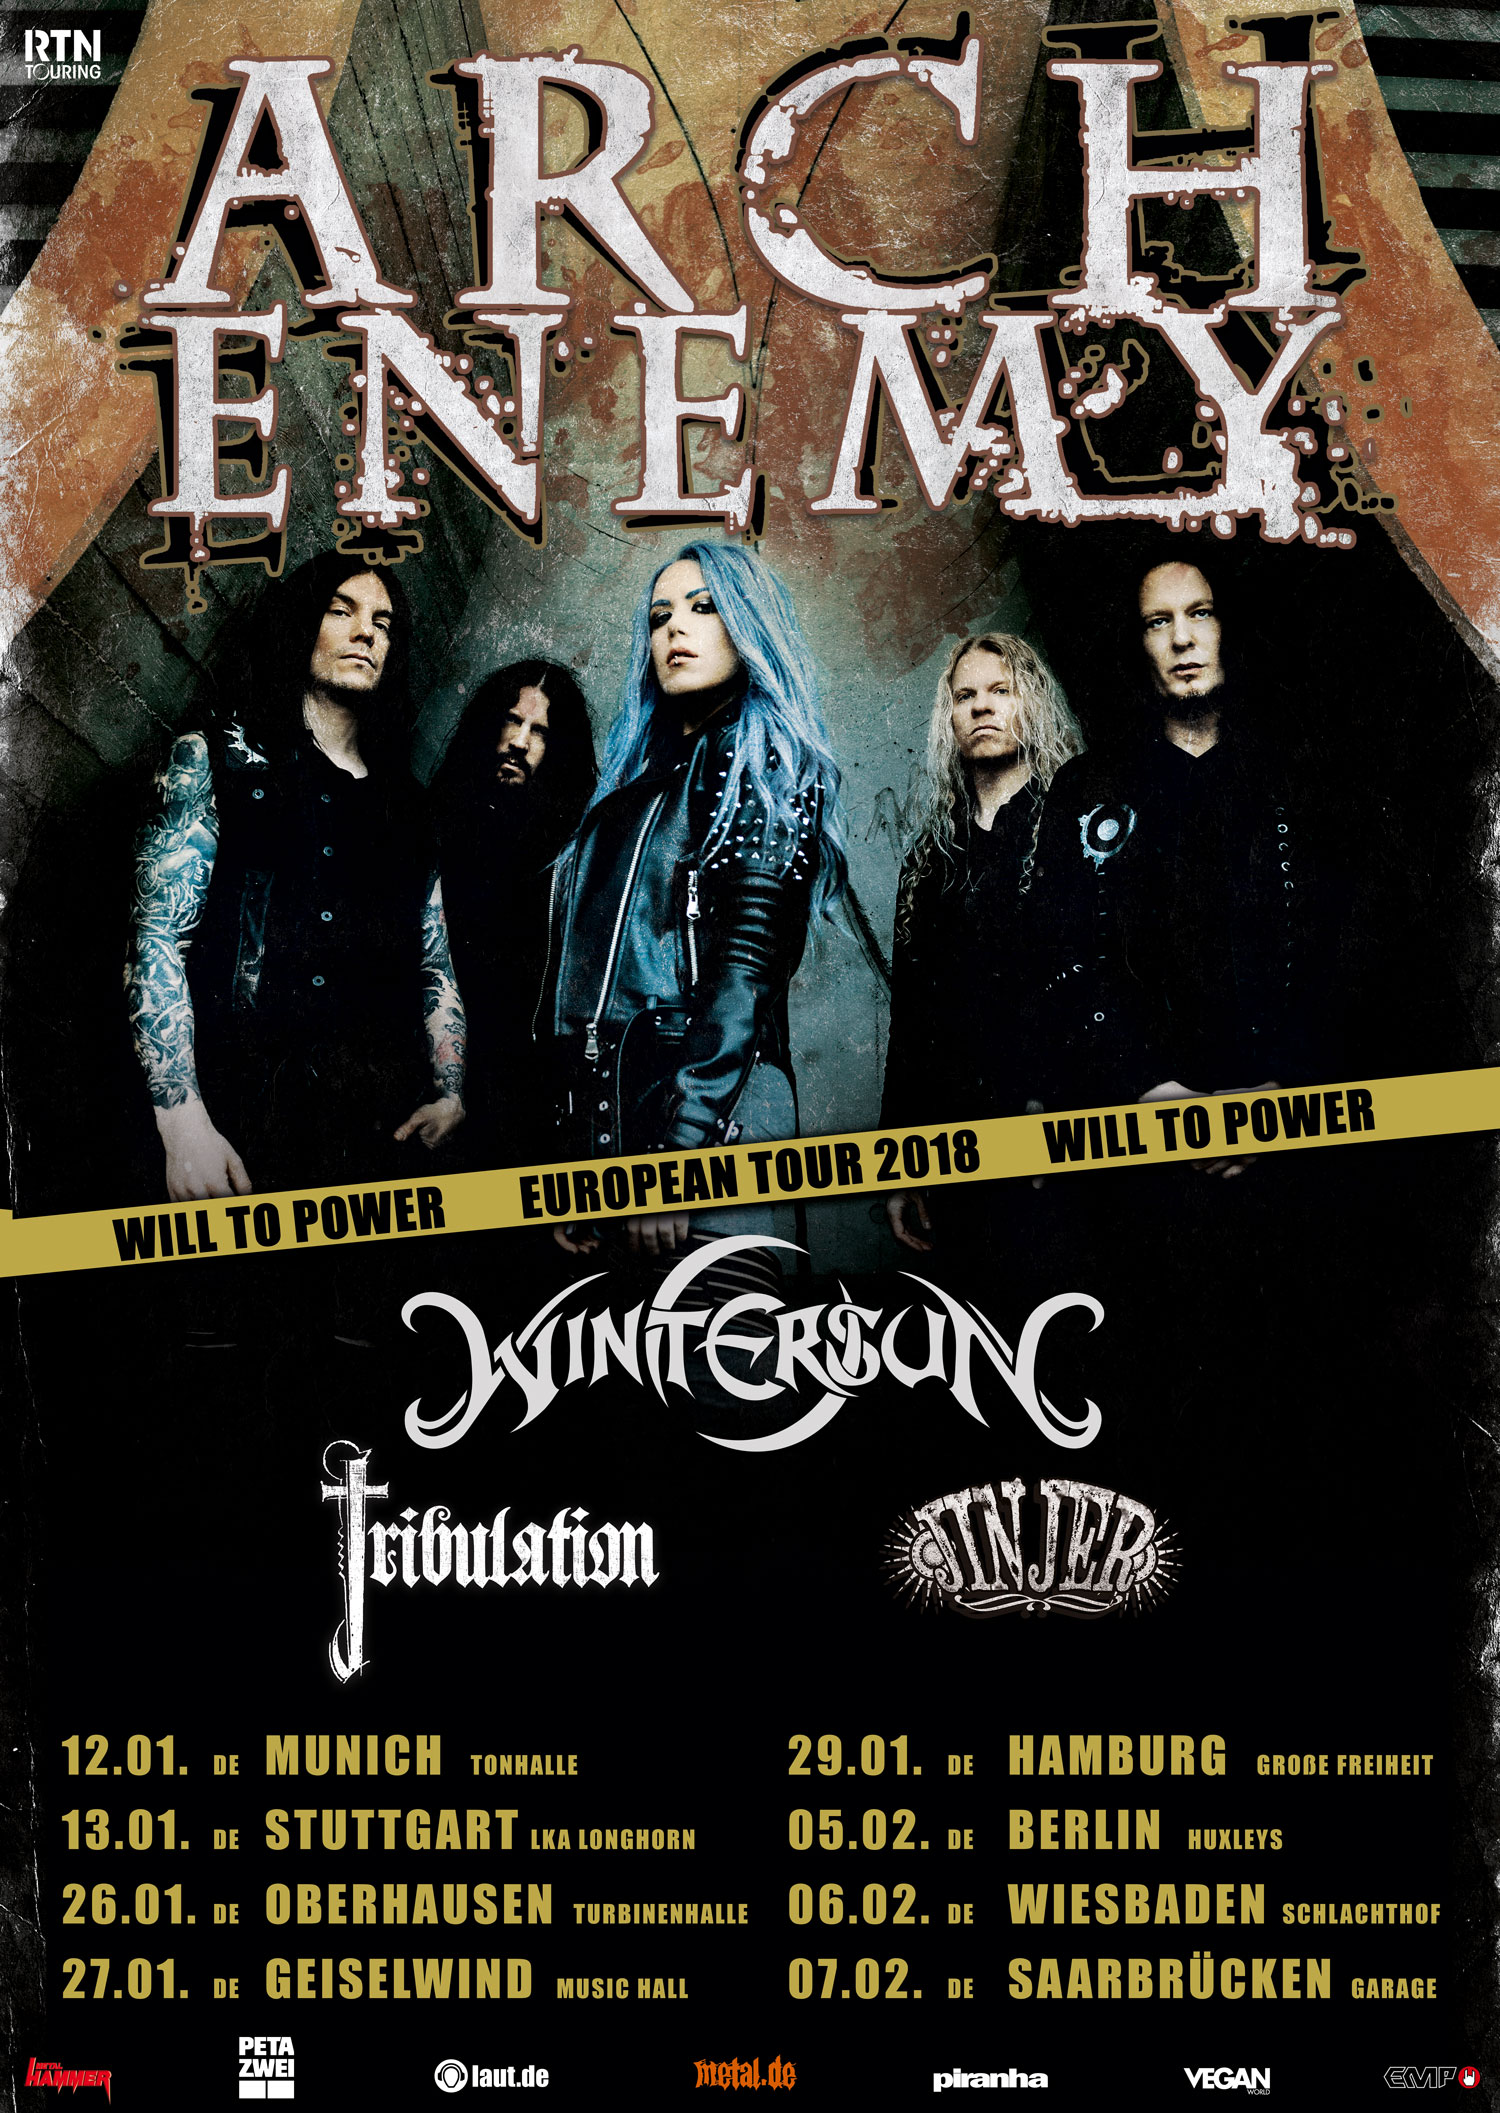 Bild Arch Enemy Tour Poster 2018